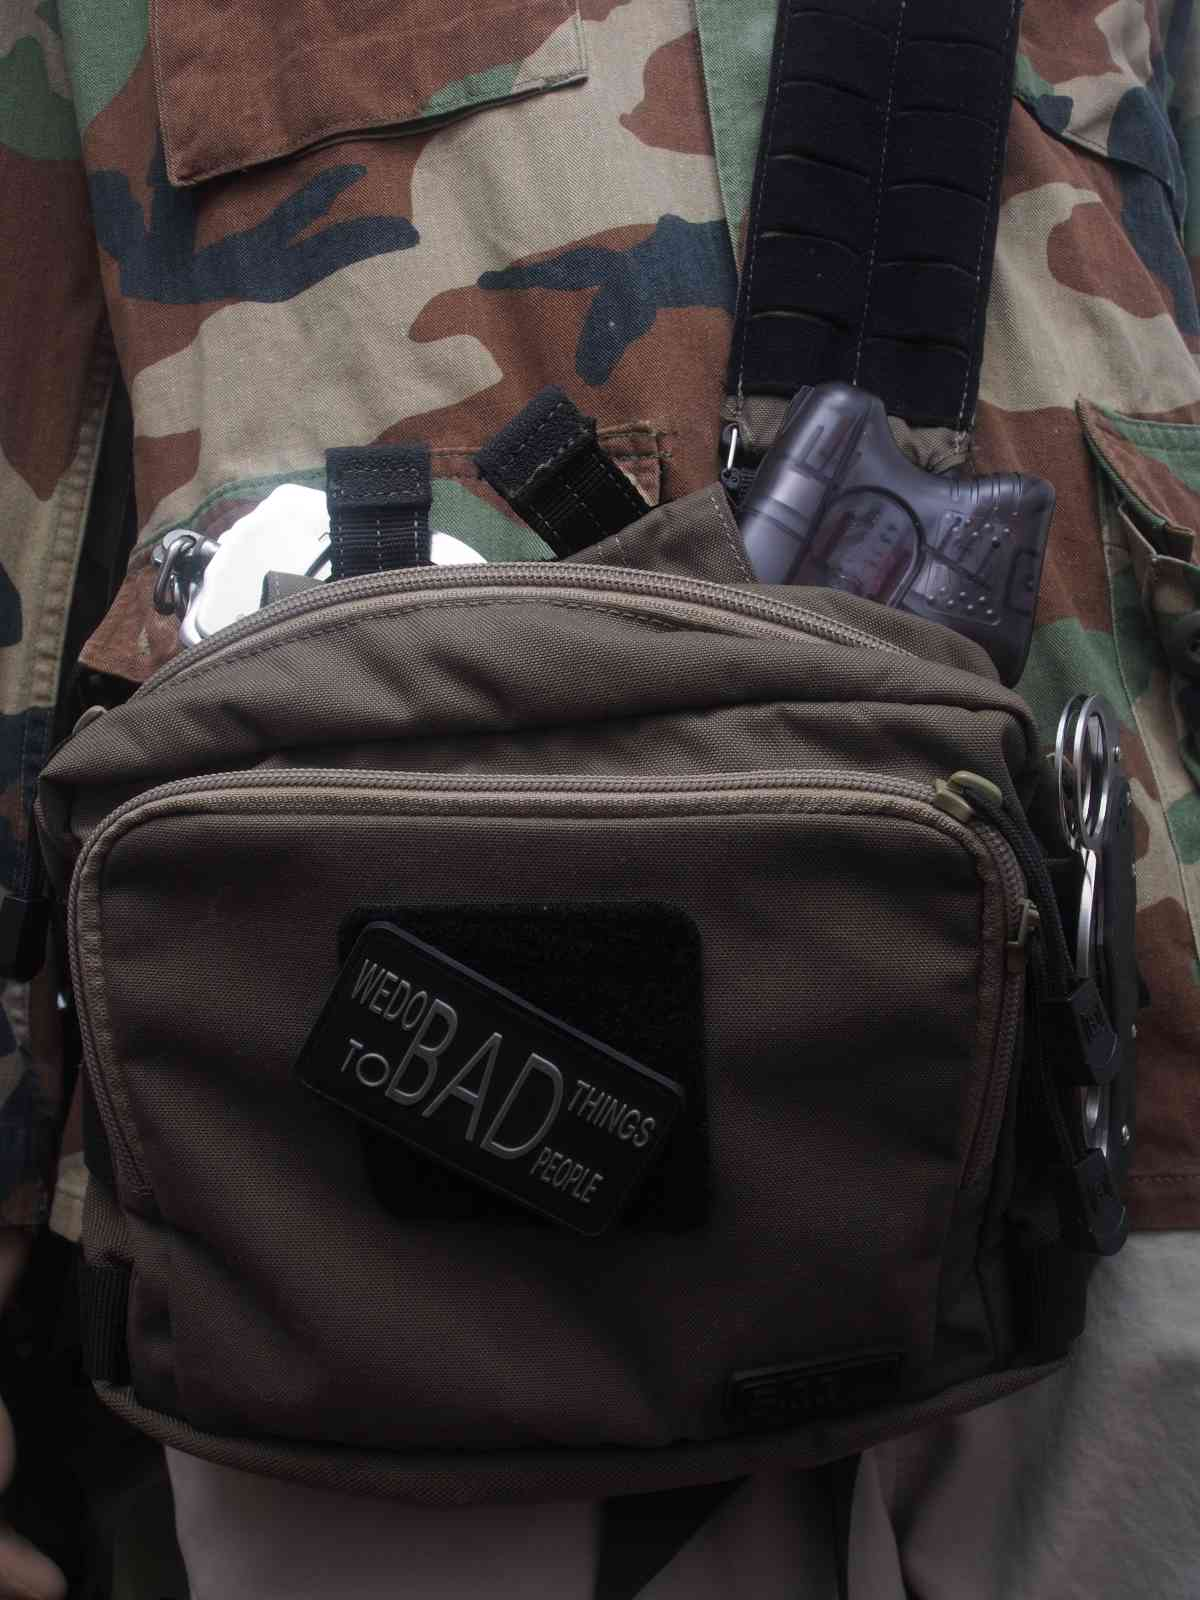 5.11Tactical 2-Banger-Bag